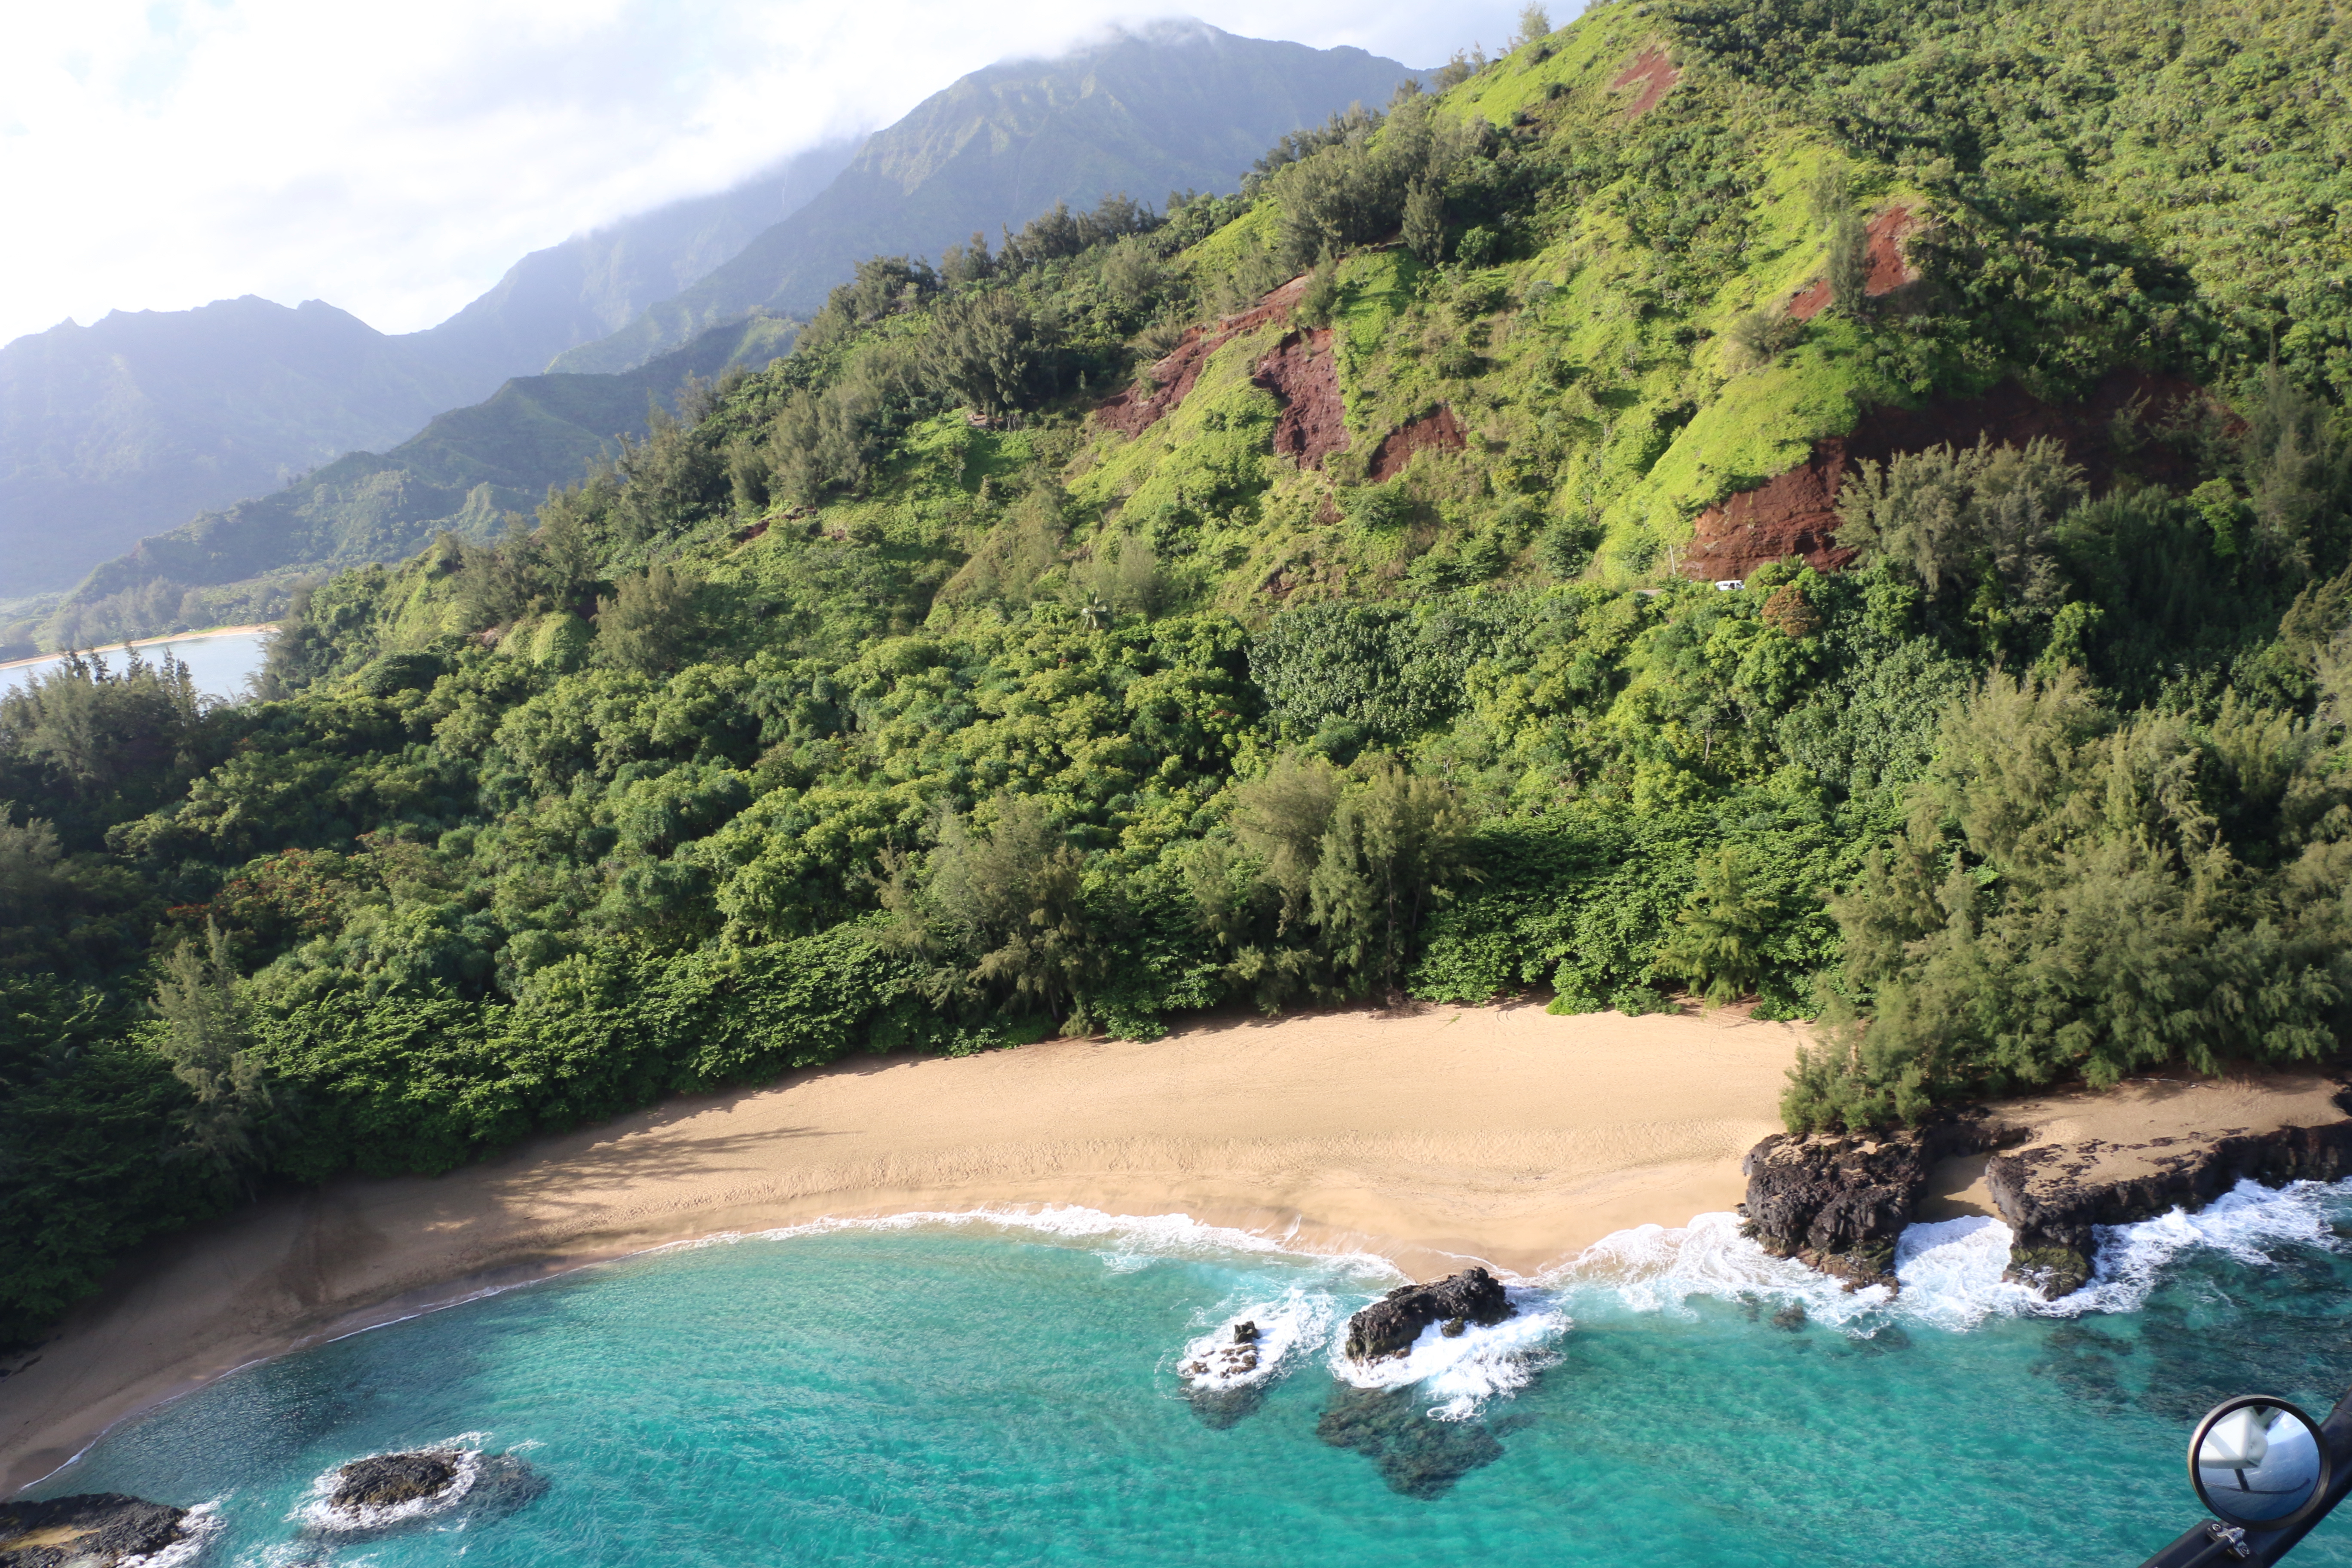 15 People Cited for Entering Closed Kalalau Area